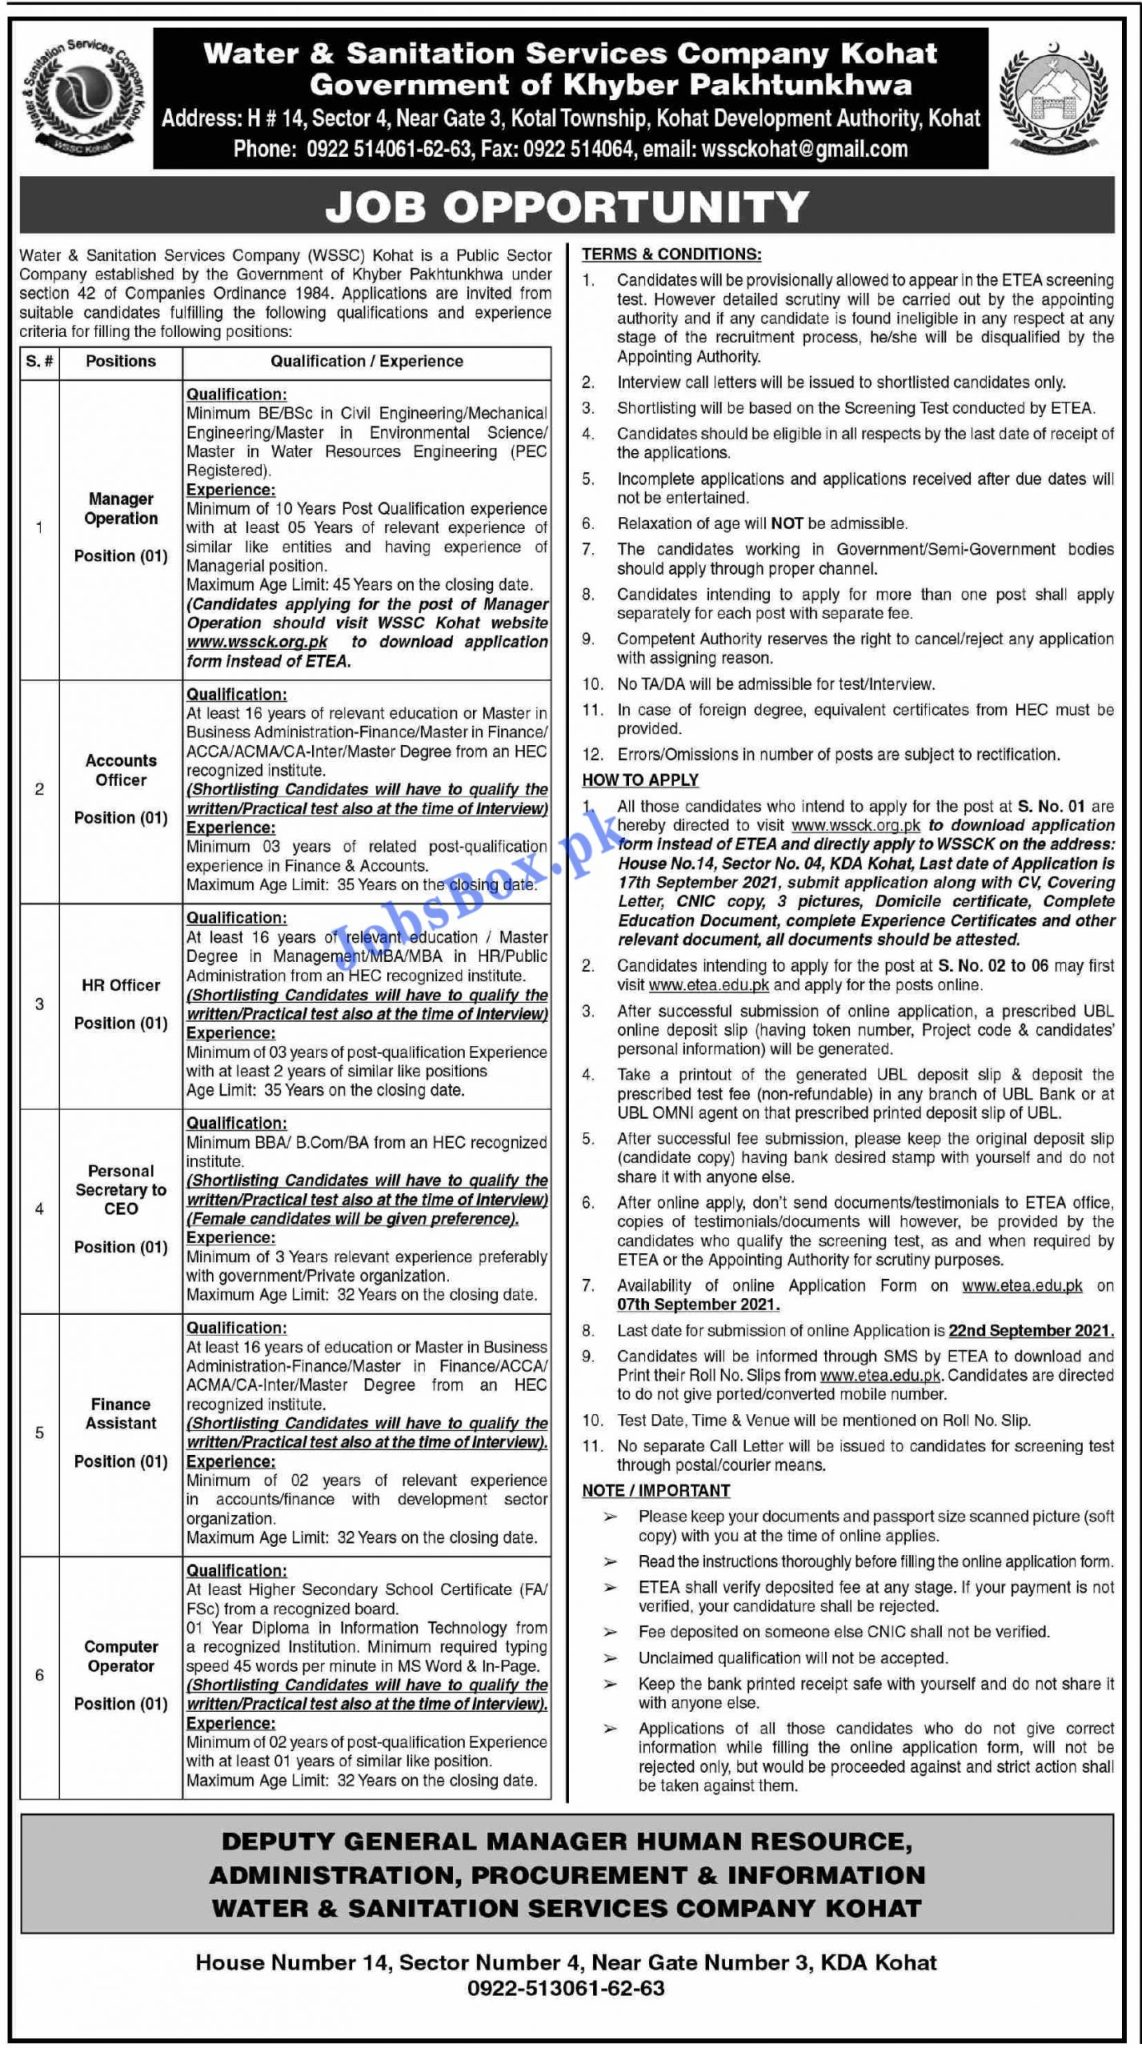 WATER & SANITATION SERVICE COMPANY KOHAT JOBS 2021/Manager operation/Account/HR officer Financ Asist